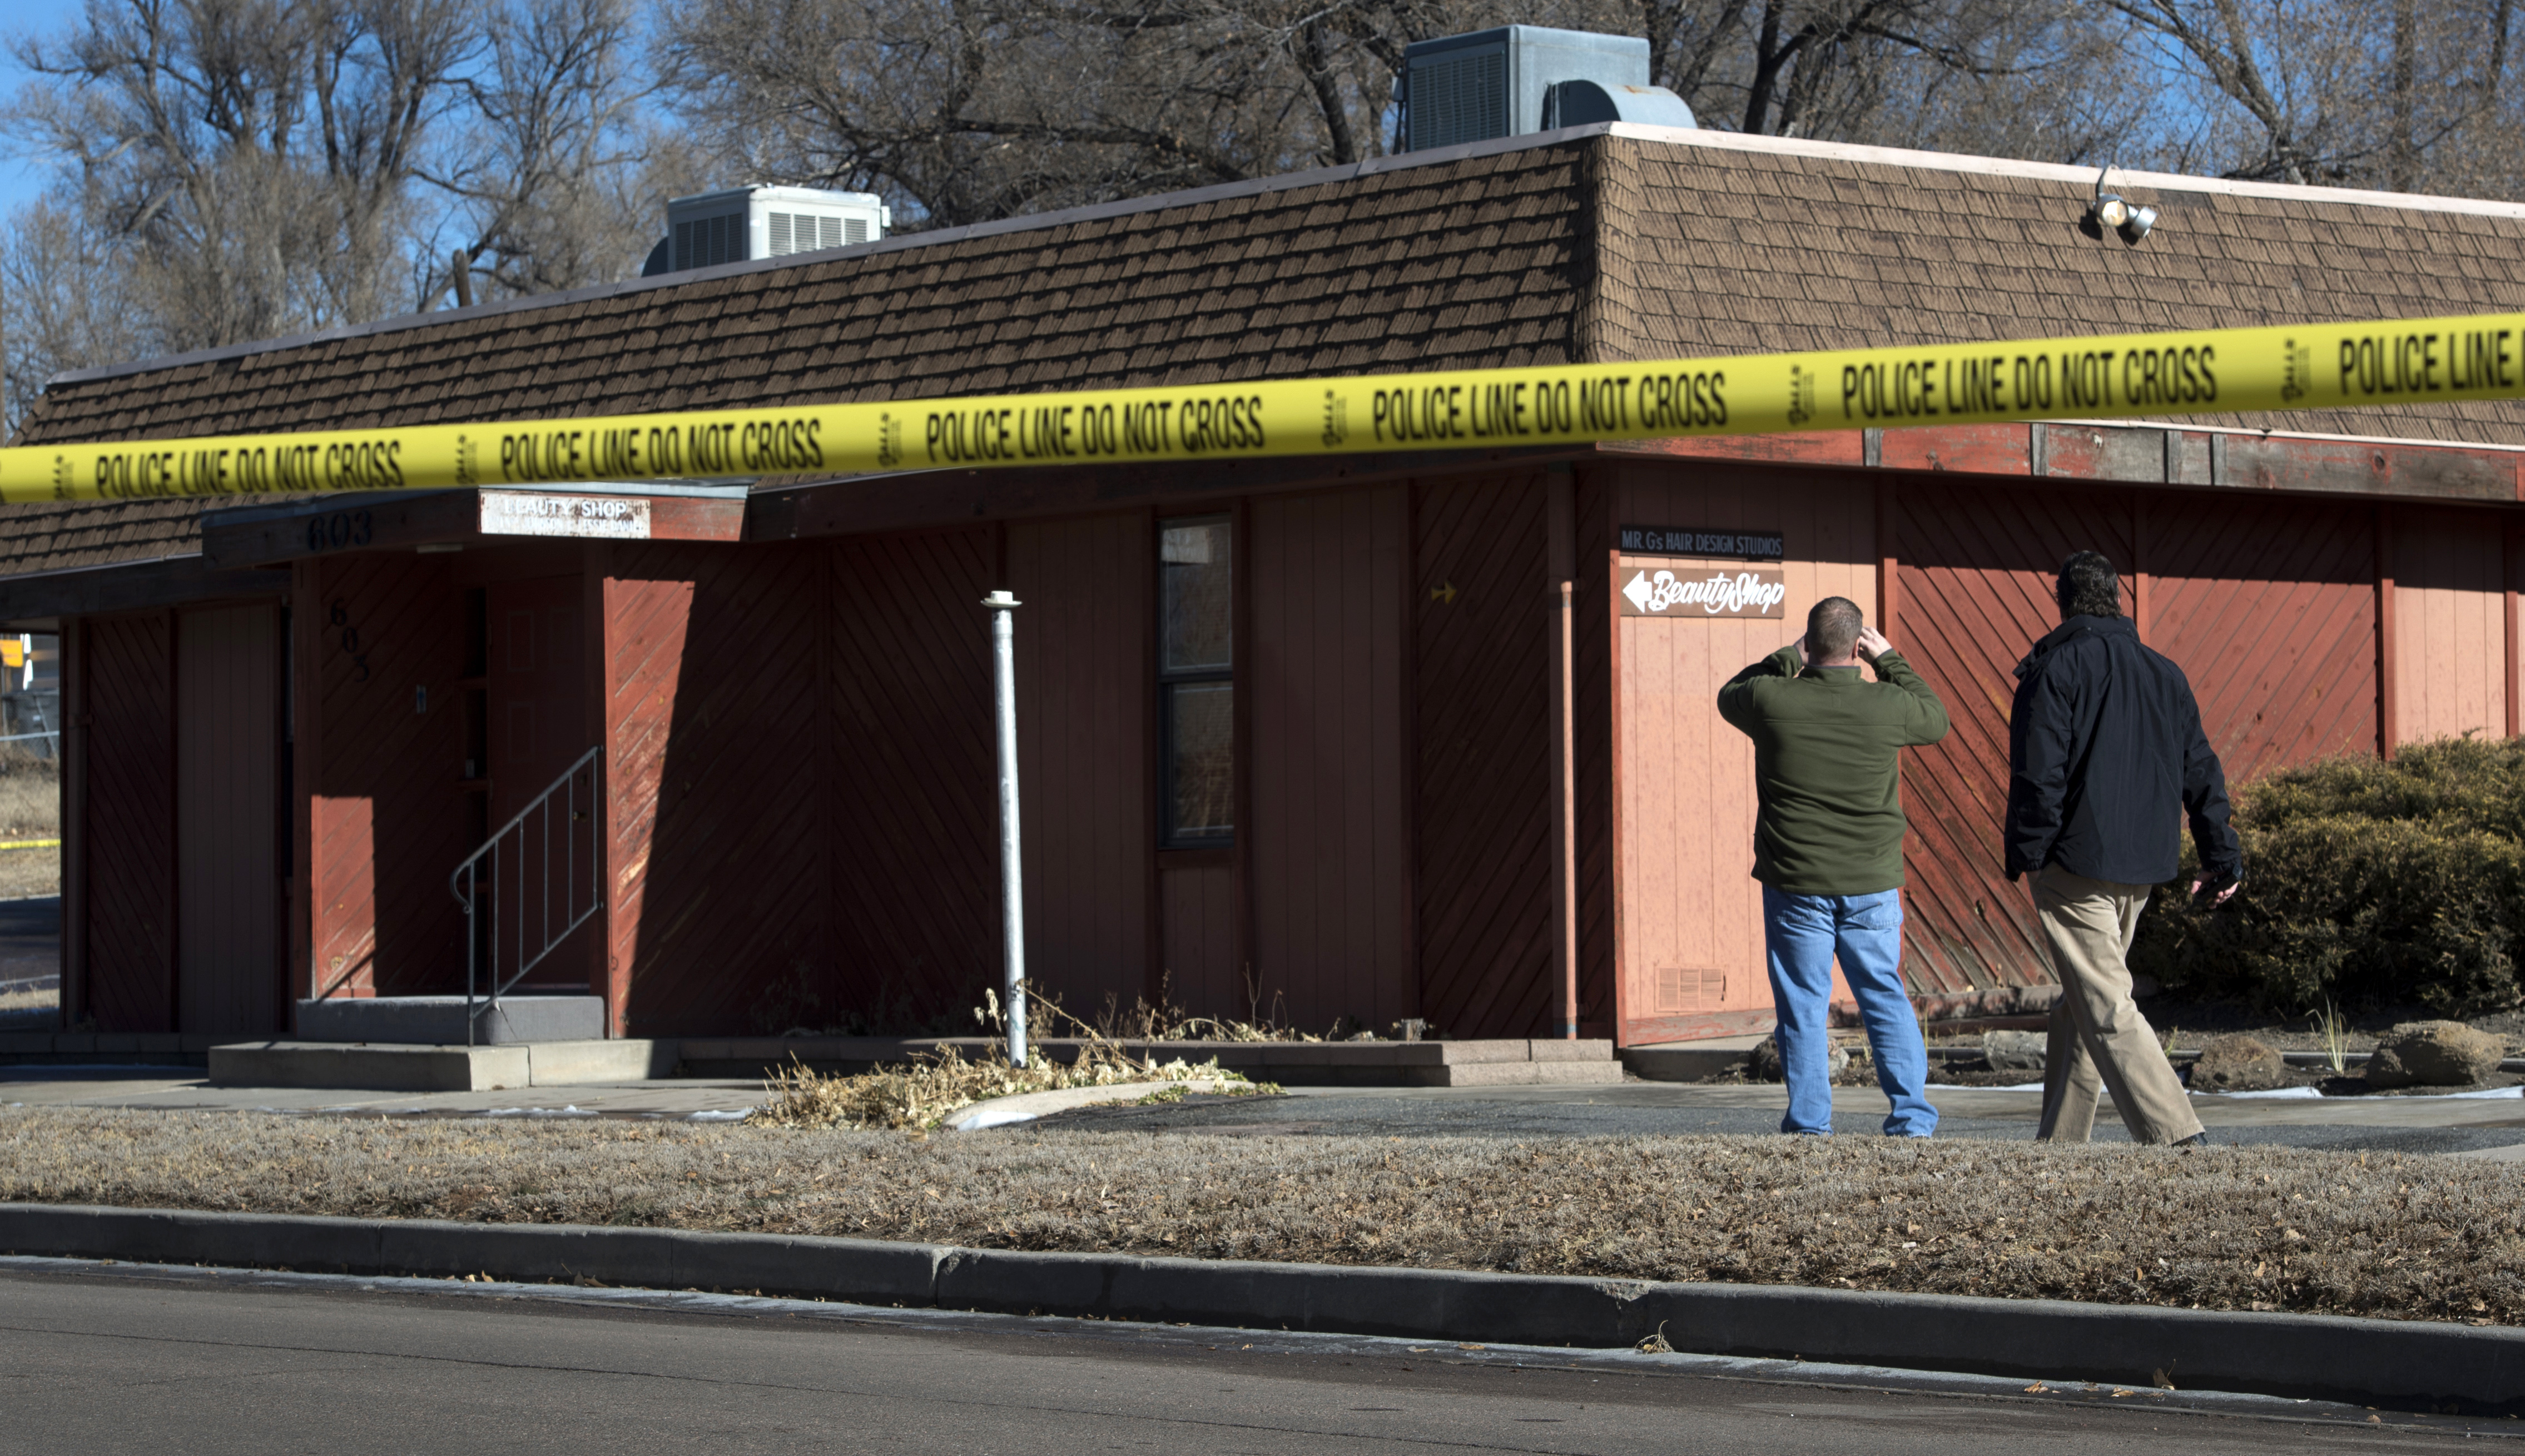 Colorado Springs police officers investigate the scene of an explosion on Jan. 6, 2015, at the NAACP's offices in Colorado Springs, Colo.